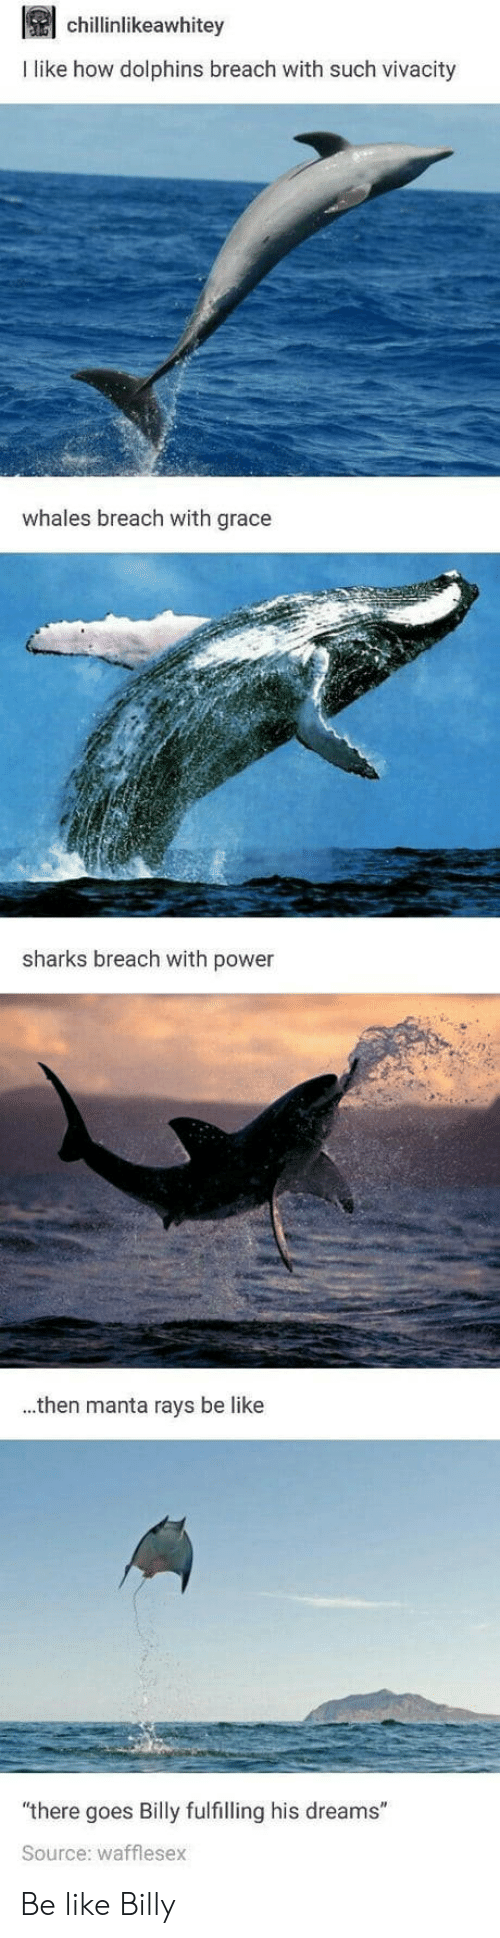 "Be Like, Dolphins, and Power: chillinlikeawhitey  I like how dolphins breach with such vivacity  whales breach with grace  sharks breach with power  ..then manta rays be like  ""there goes Billy fulfilling his dreams""  Source: wafflesex Be like Billy"